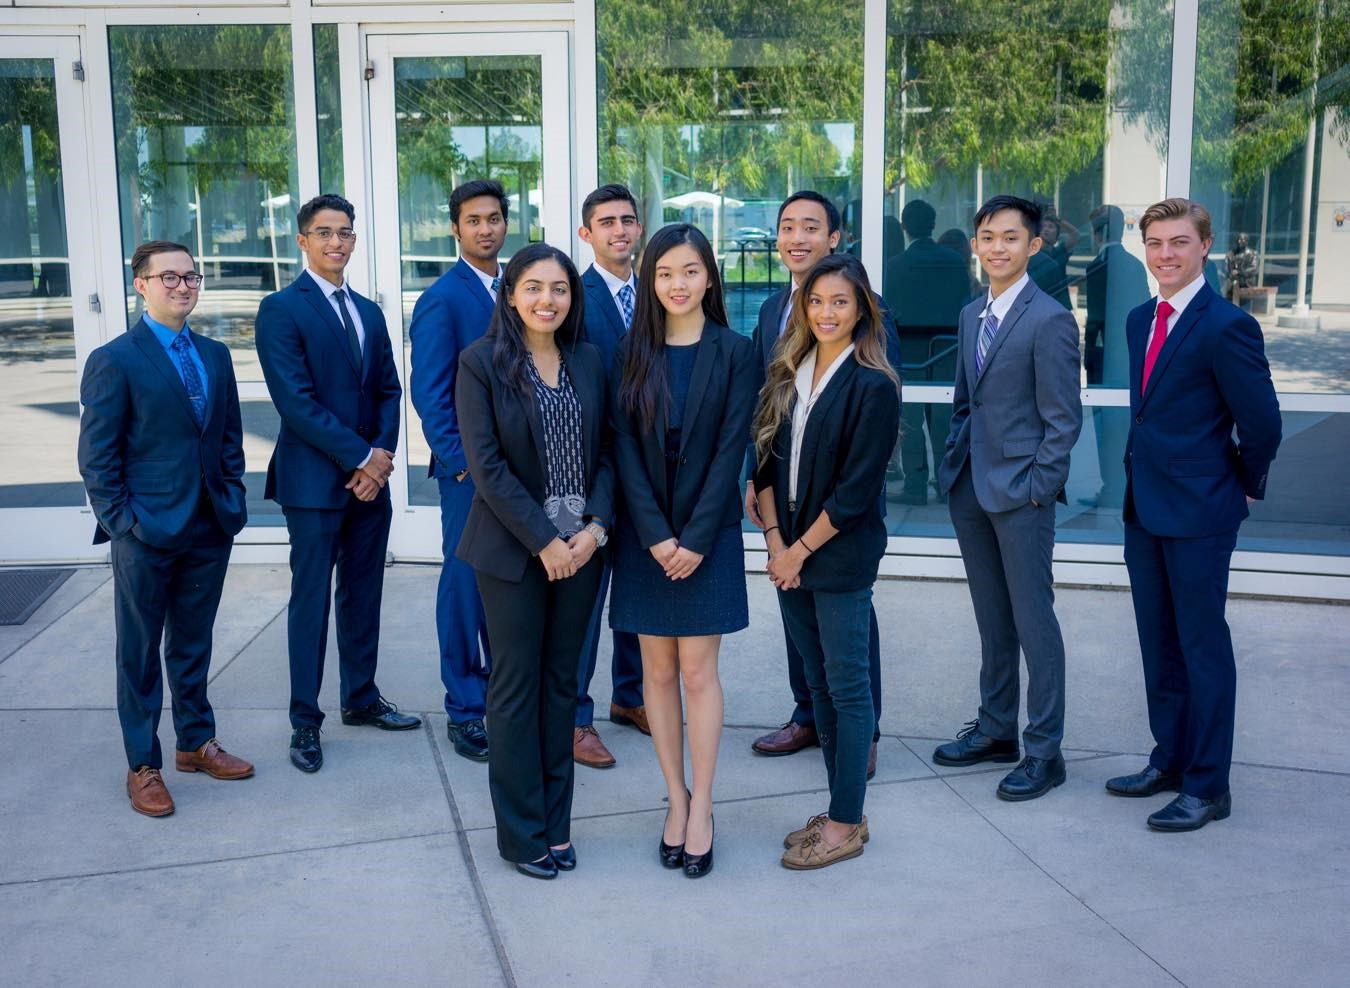 Members of the CSUF Mihaylo College Finance Association (FA) pose in front of the Steven G. Mihaylo Hall in professional business attire.